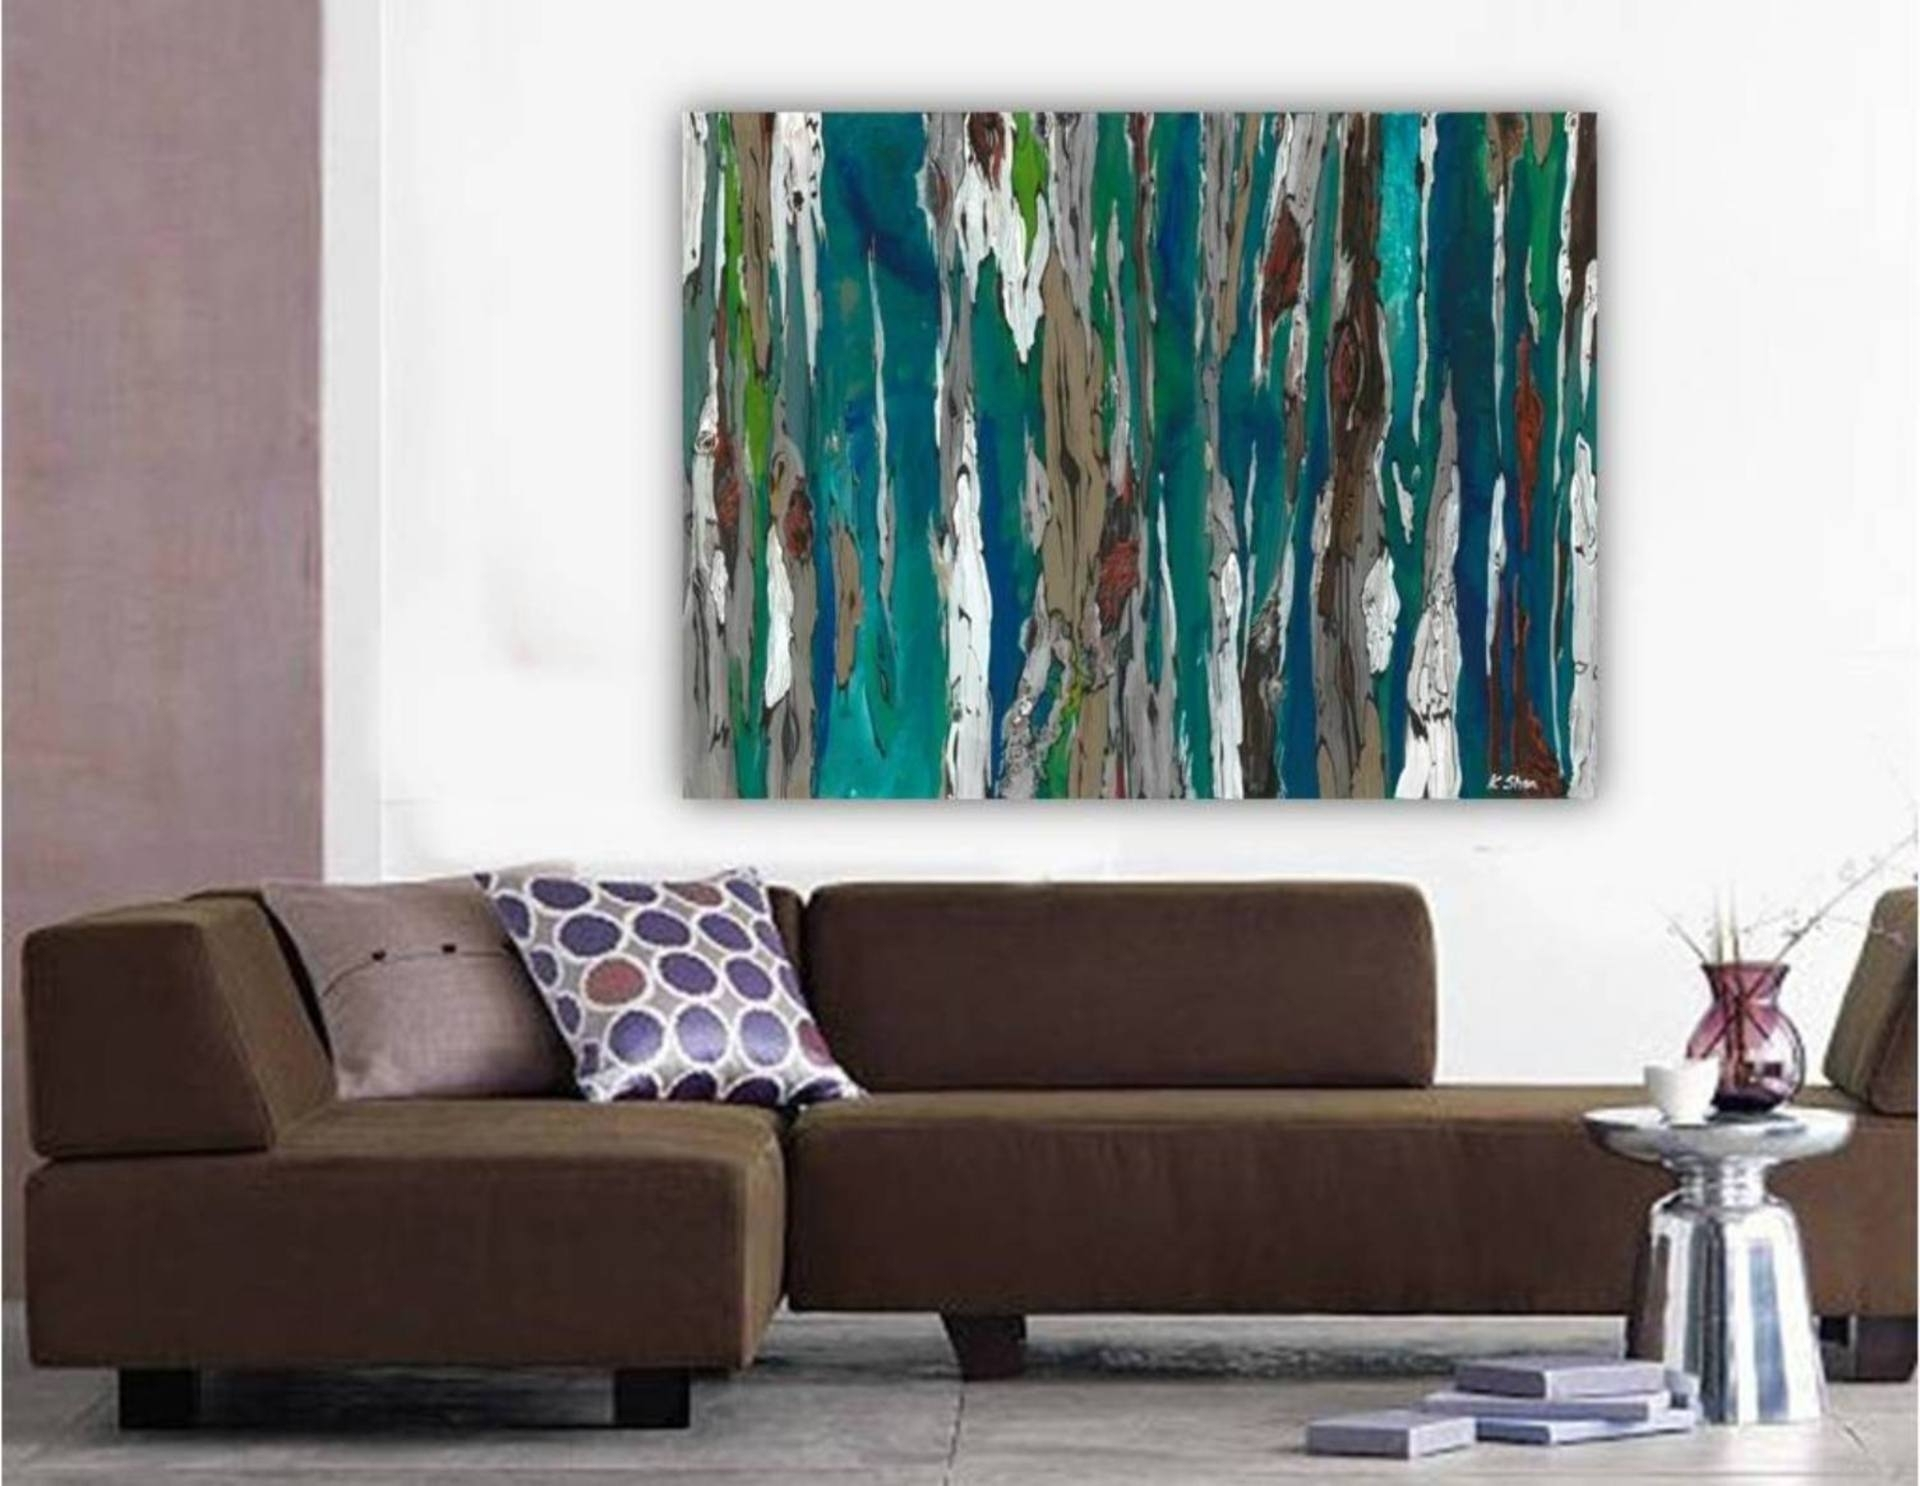 Saatchi Art: Large Contemporary Original Abstract Tree Landscape Within Best And Newest Teal And Brown Wall Art (View 14 of 20)